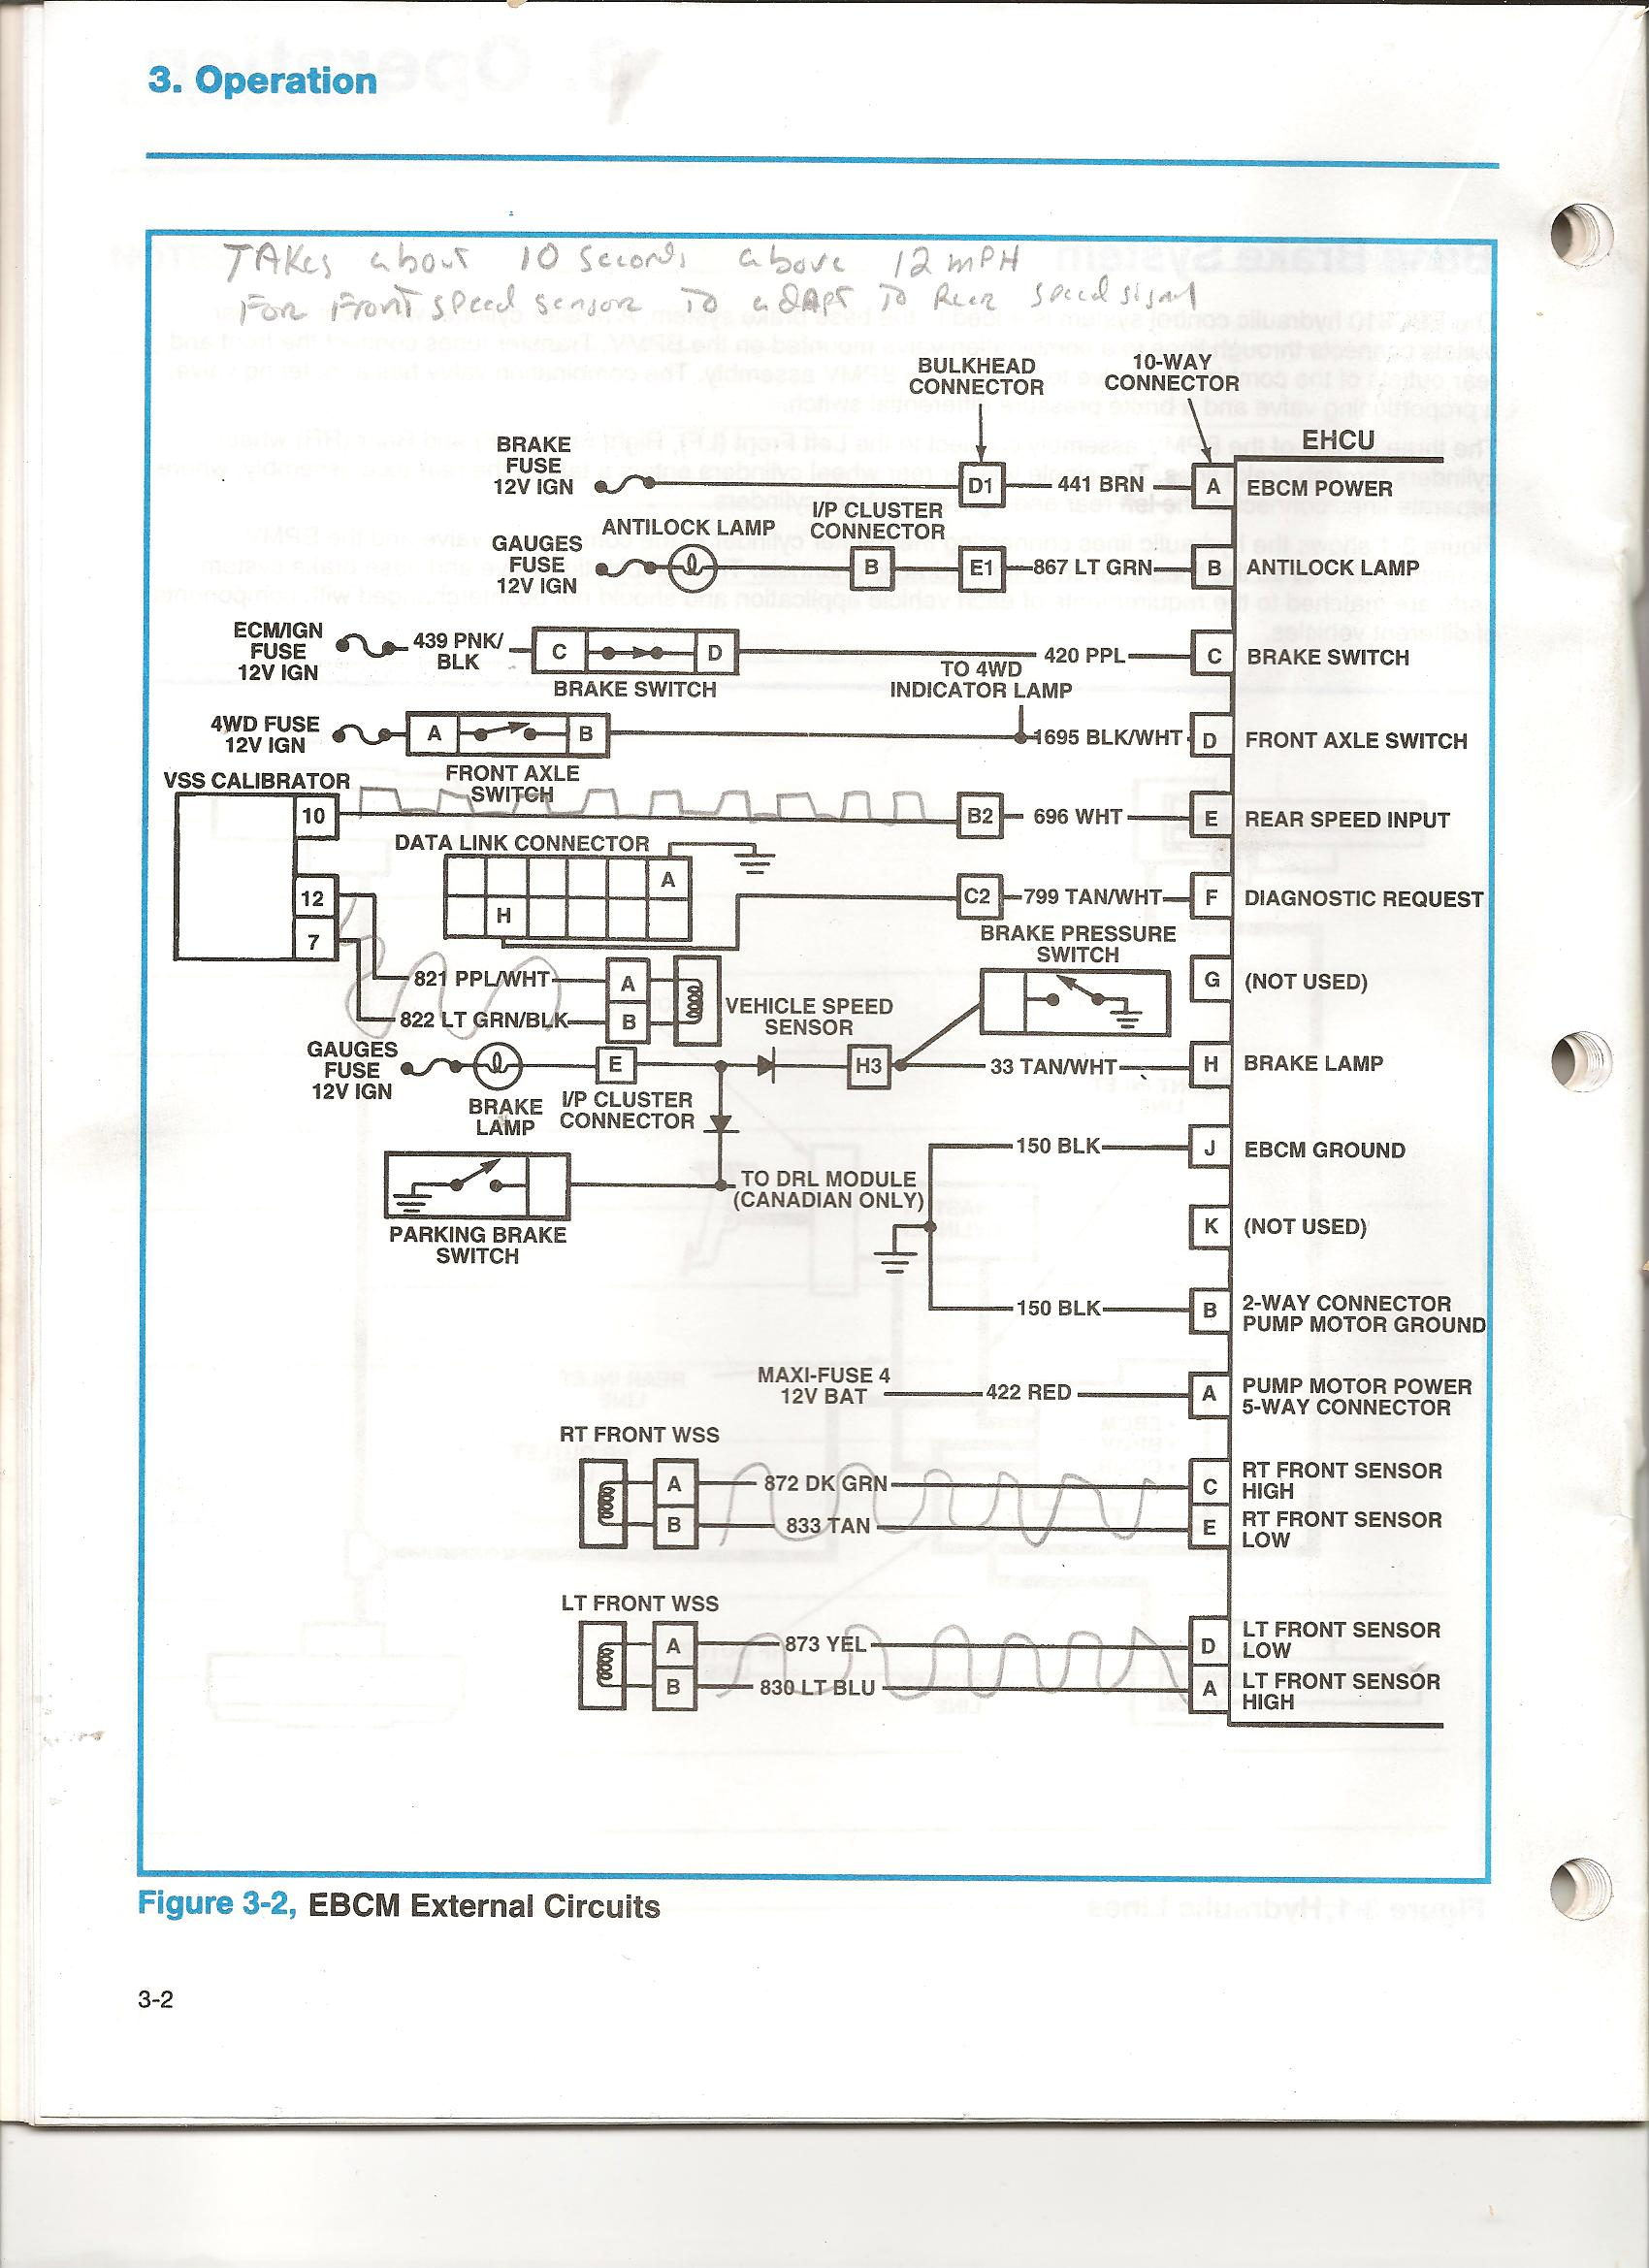 94 chevy wiring diagram get free image about wiring diagram